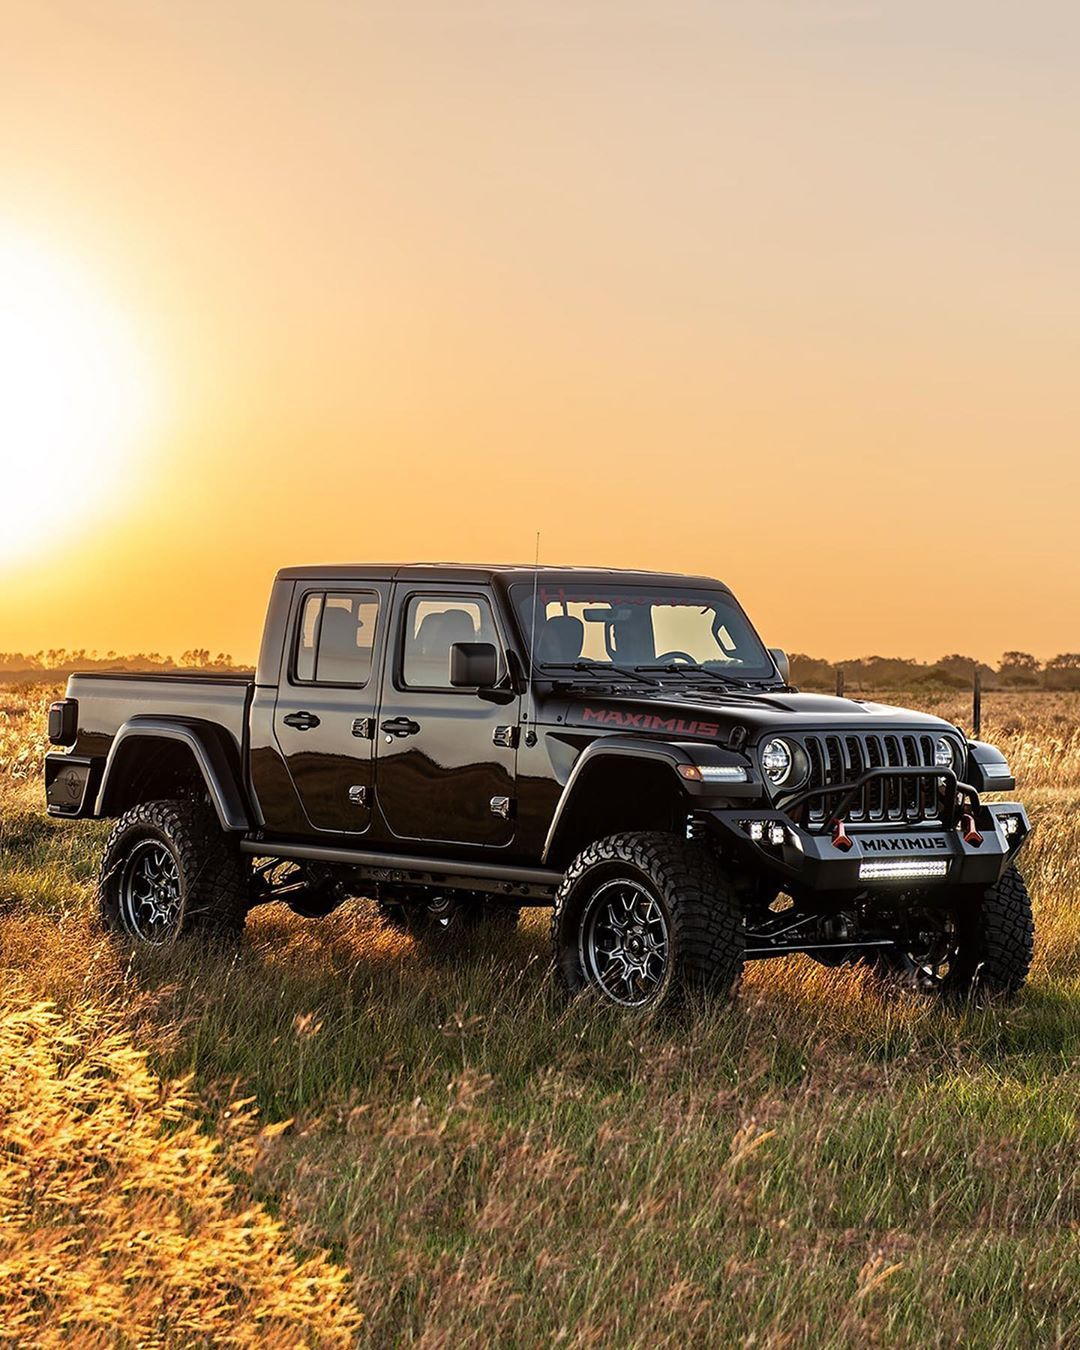 Jeep gladiator image by Nataliaalstrup on Jeep in 2020